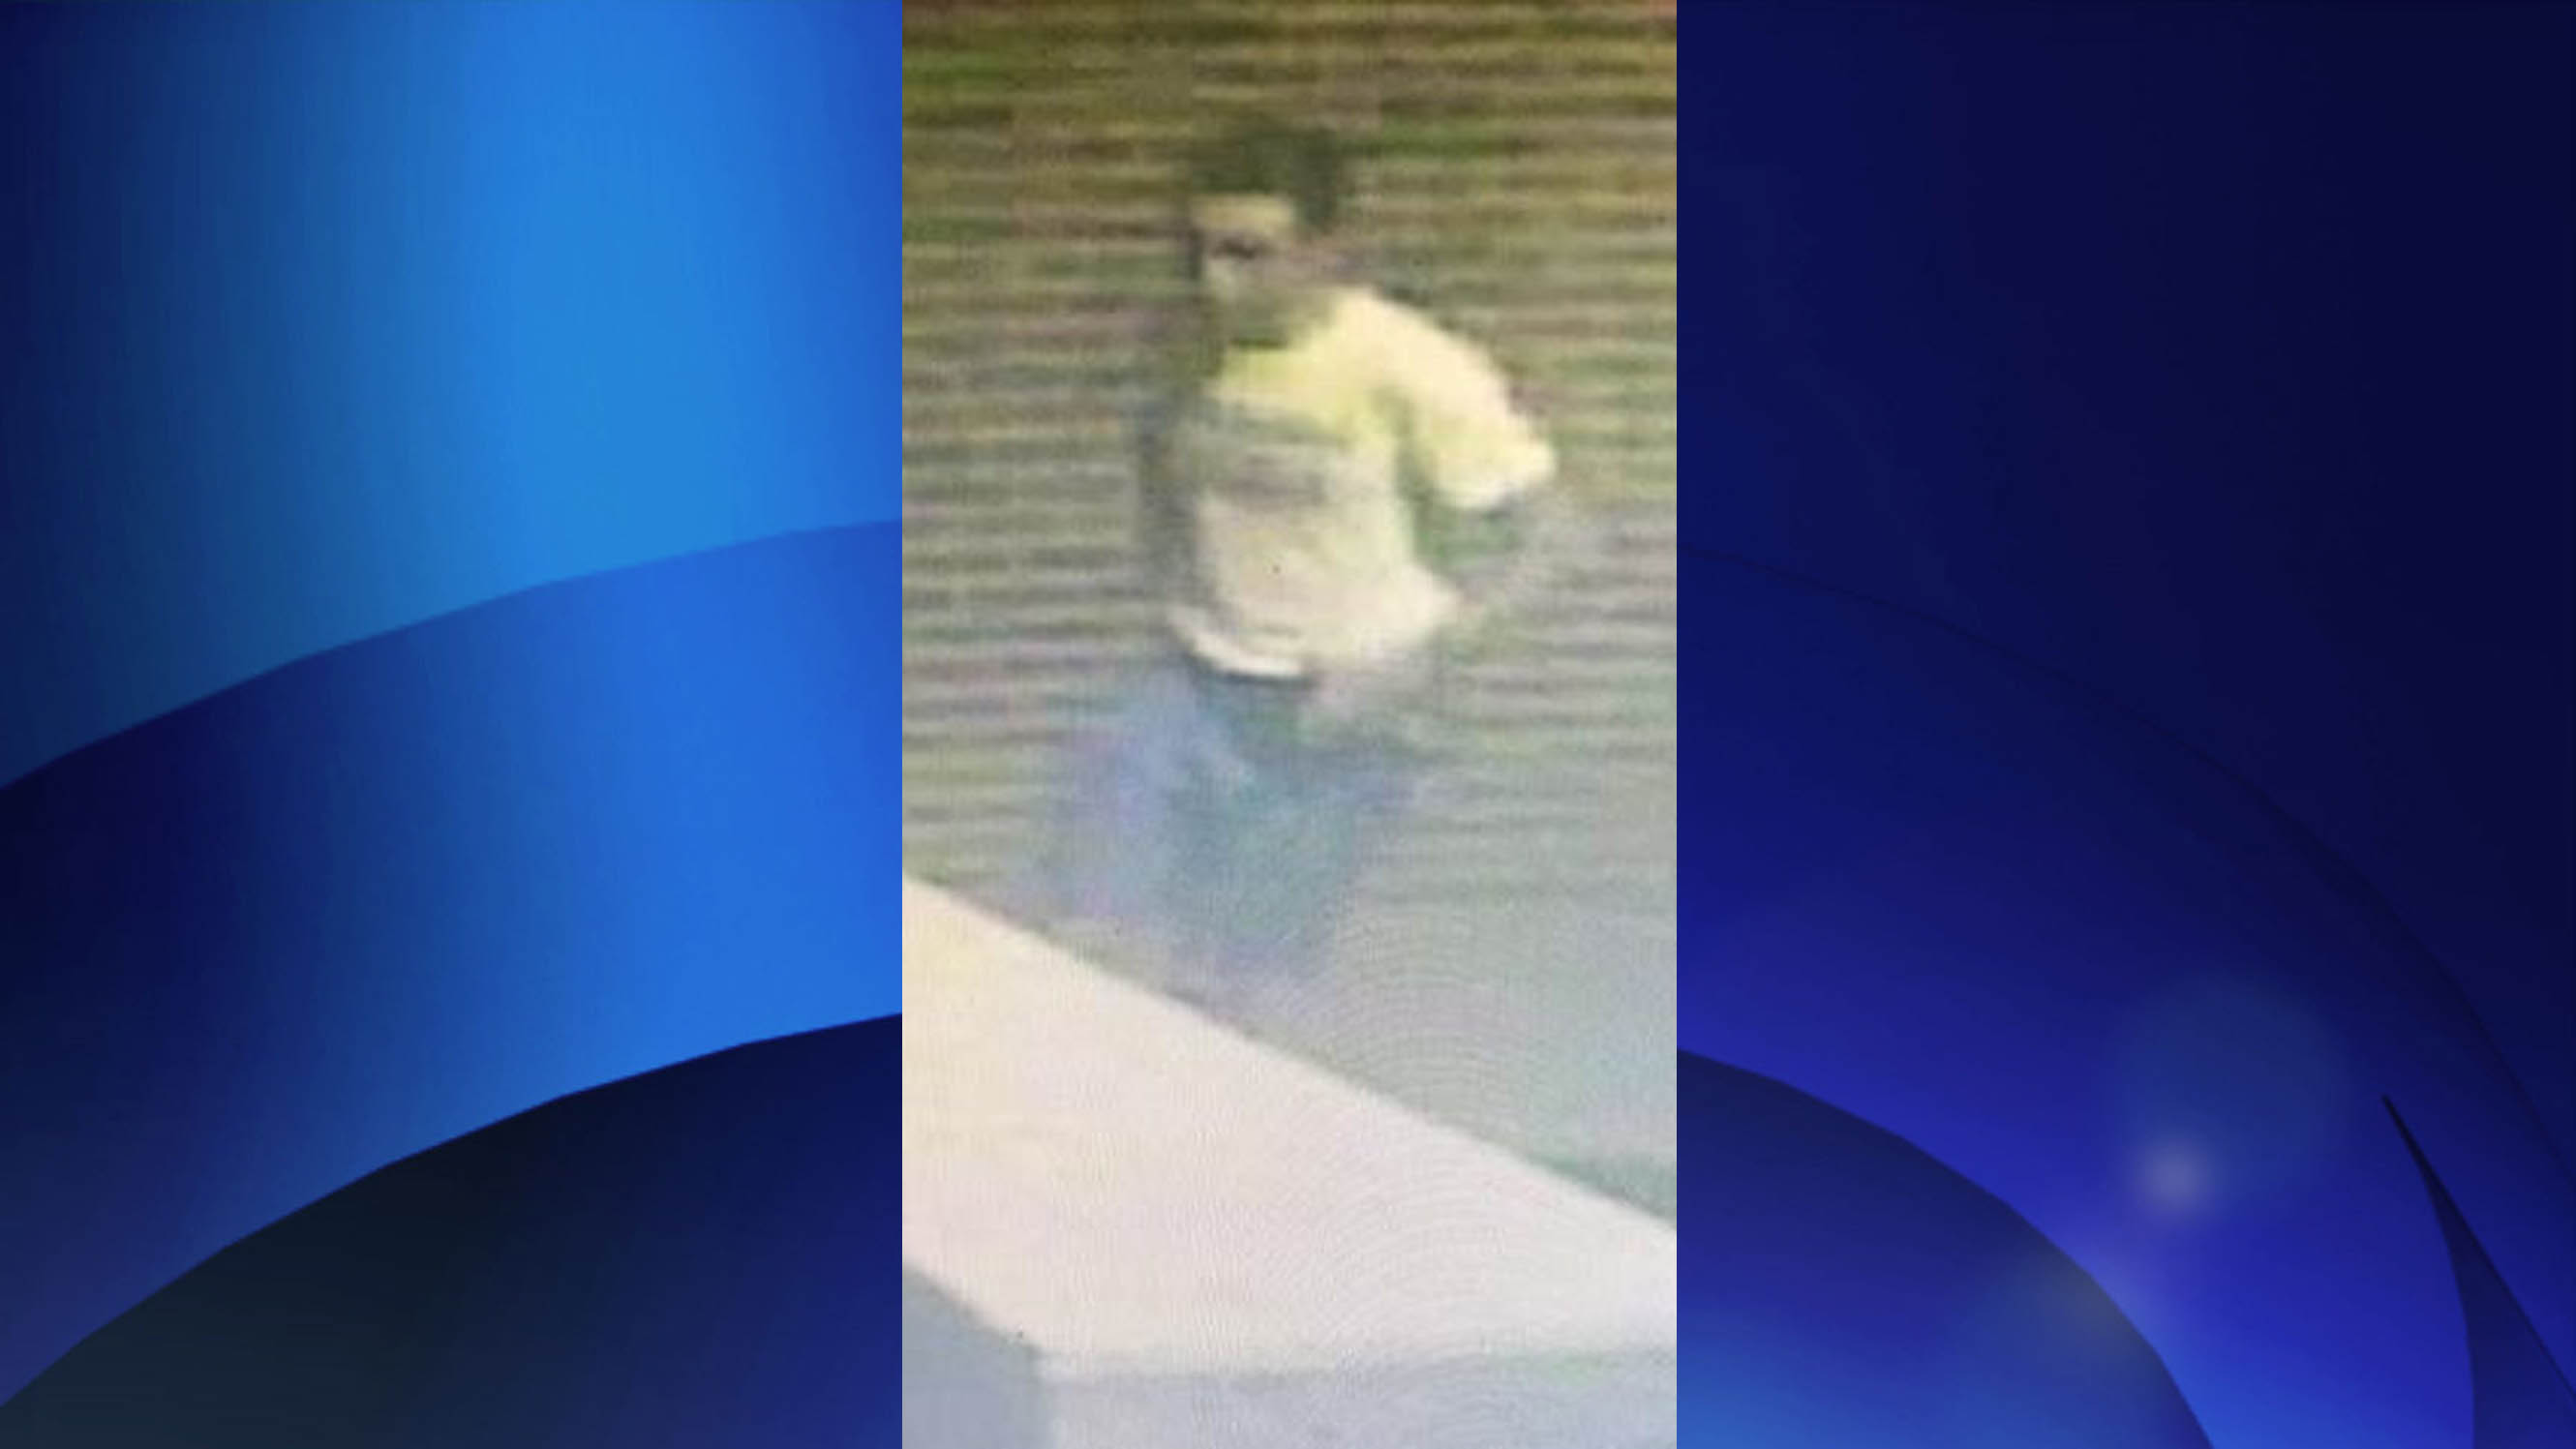 Toronto police are looking for this man after a woman said she was sexually assaulted near Don Mills and Godstone roads on July 22, 2017. TORONTO POLICE